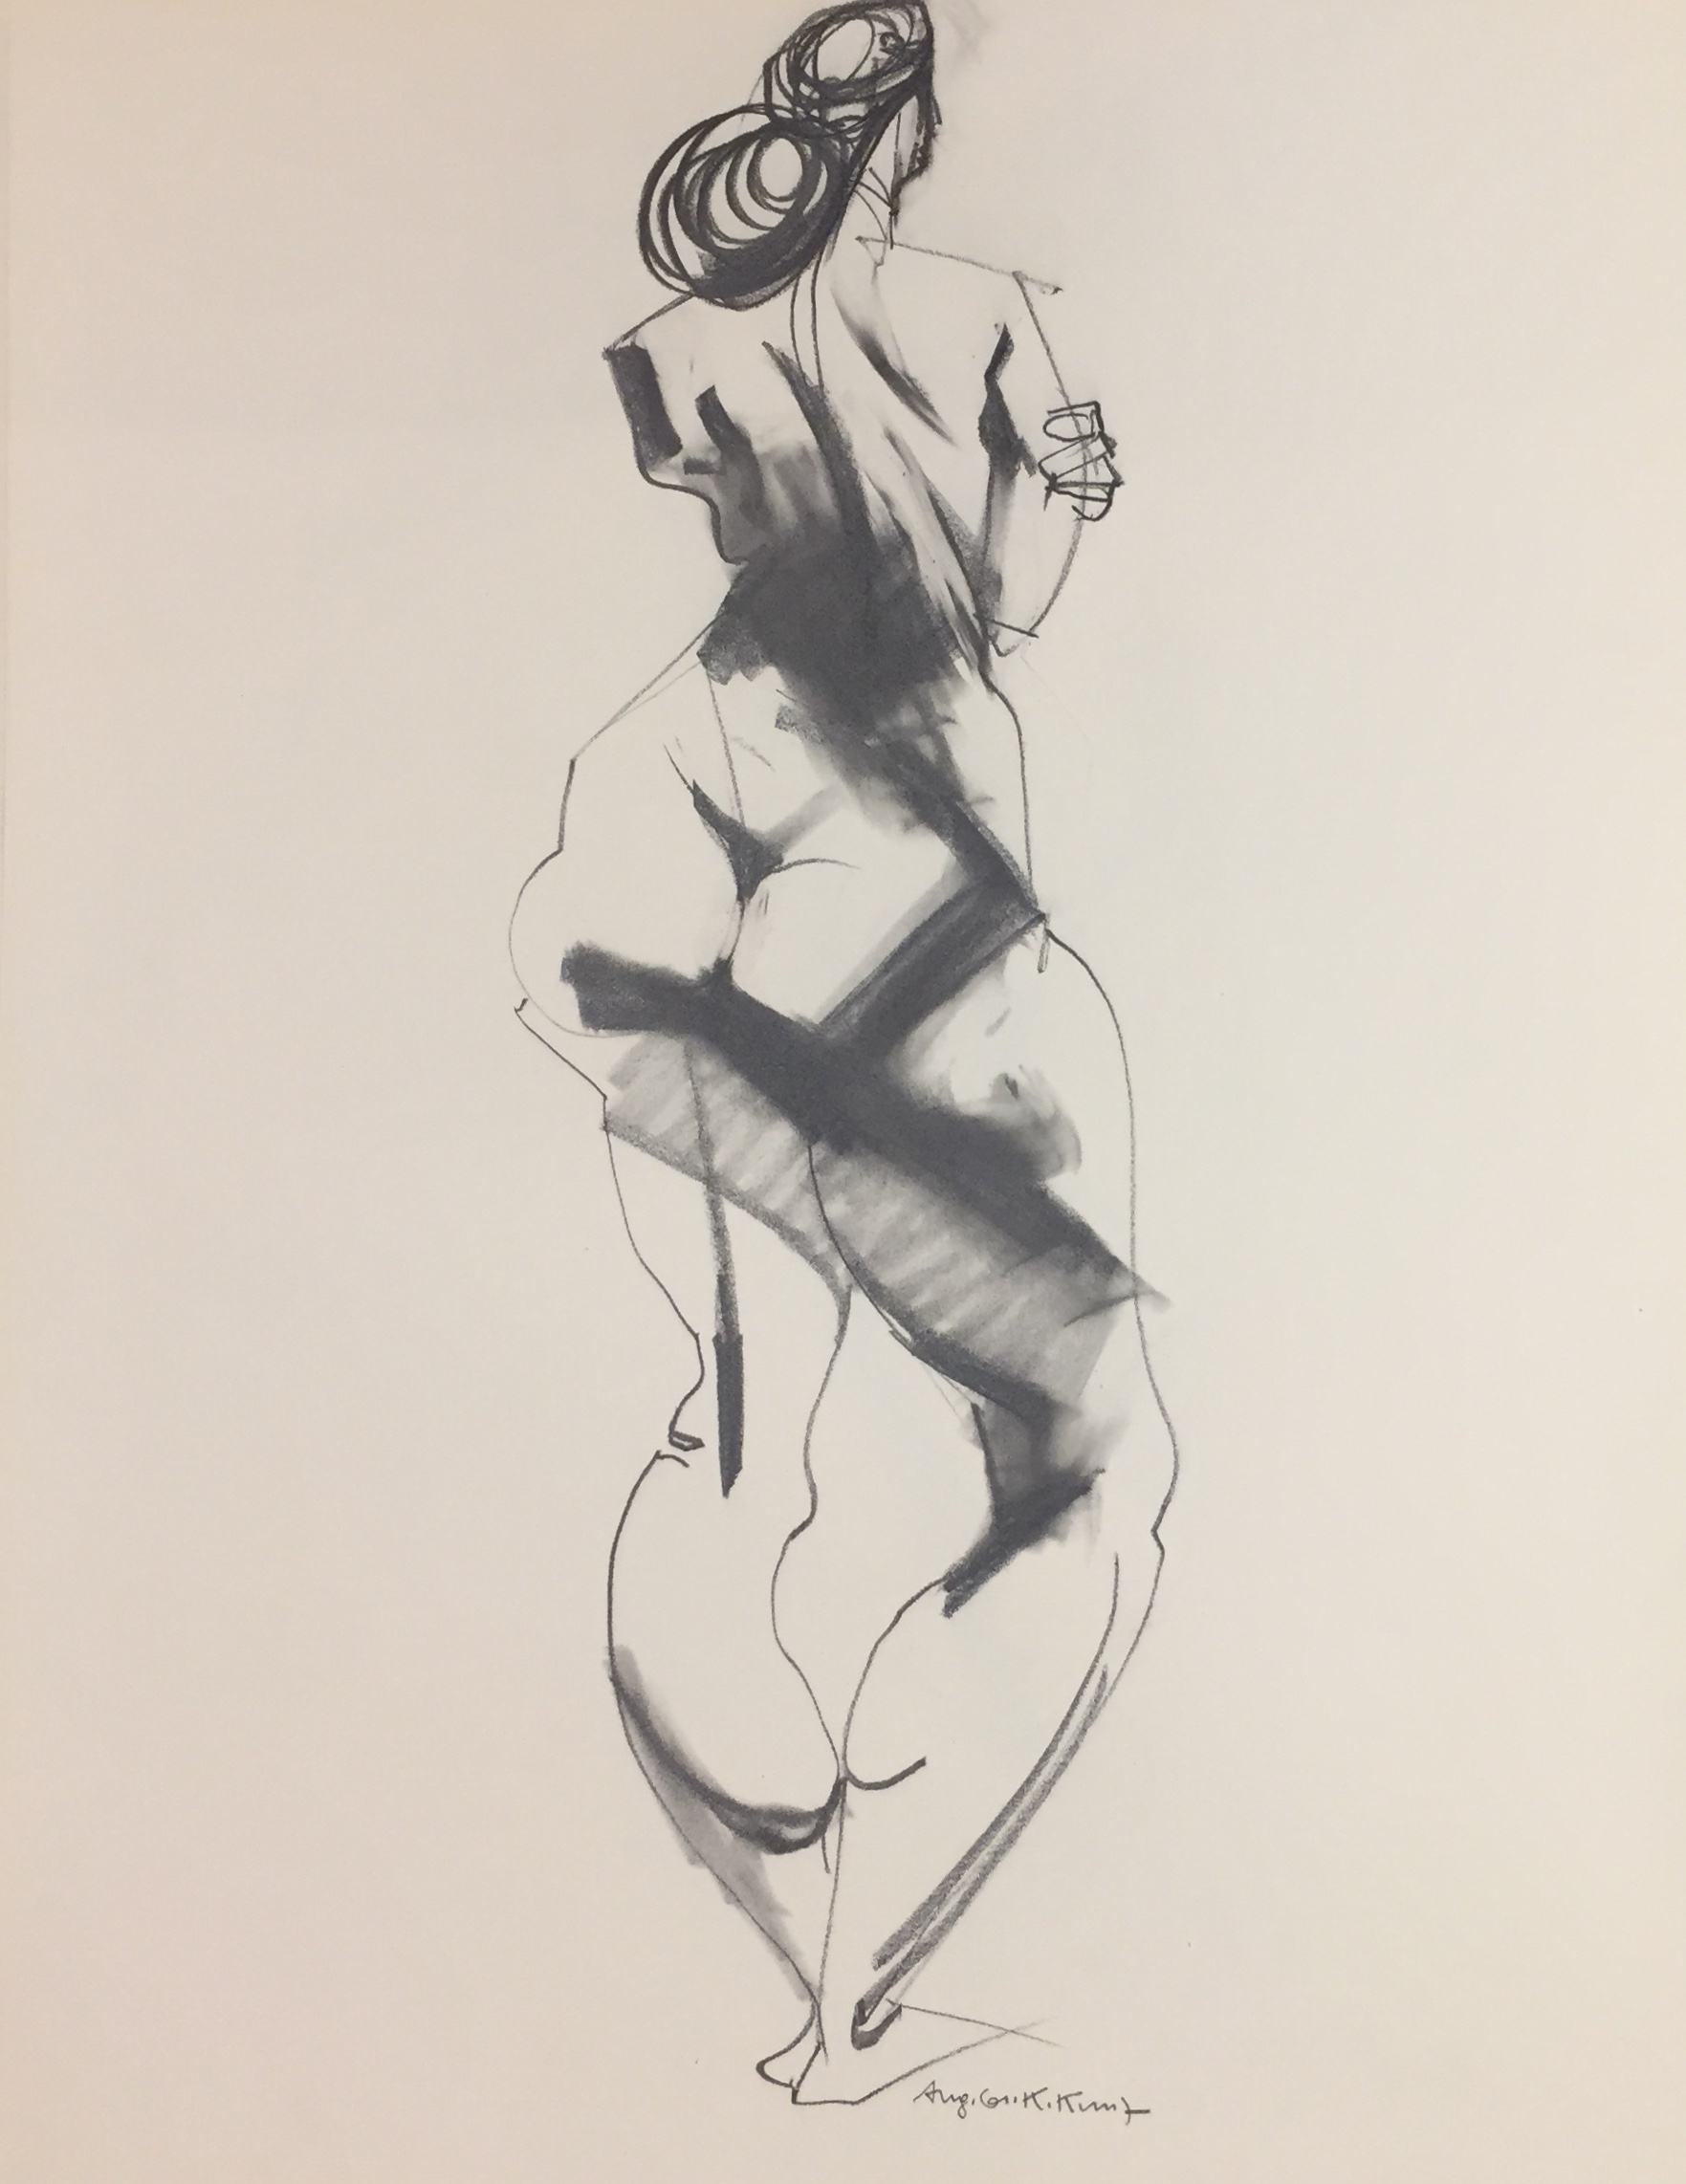 Karl Kunz | Nude | 1961 | pencil, charcoal | signed and dated | 65 x 50 cm